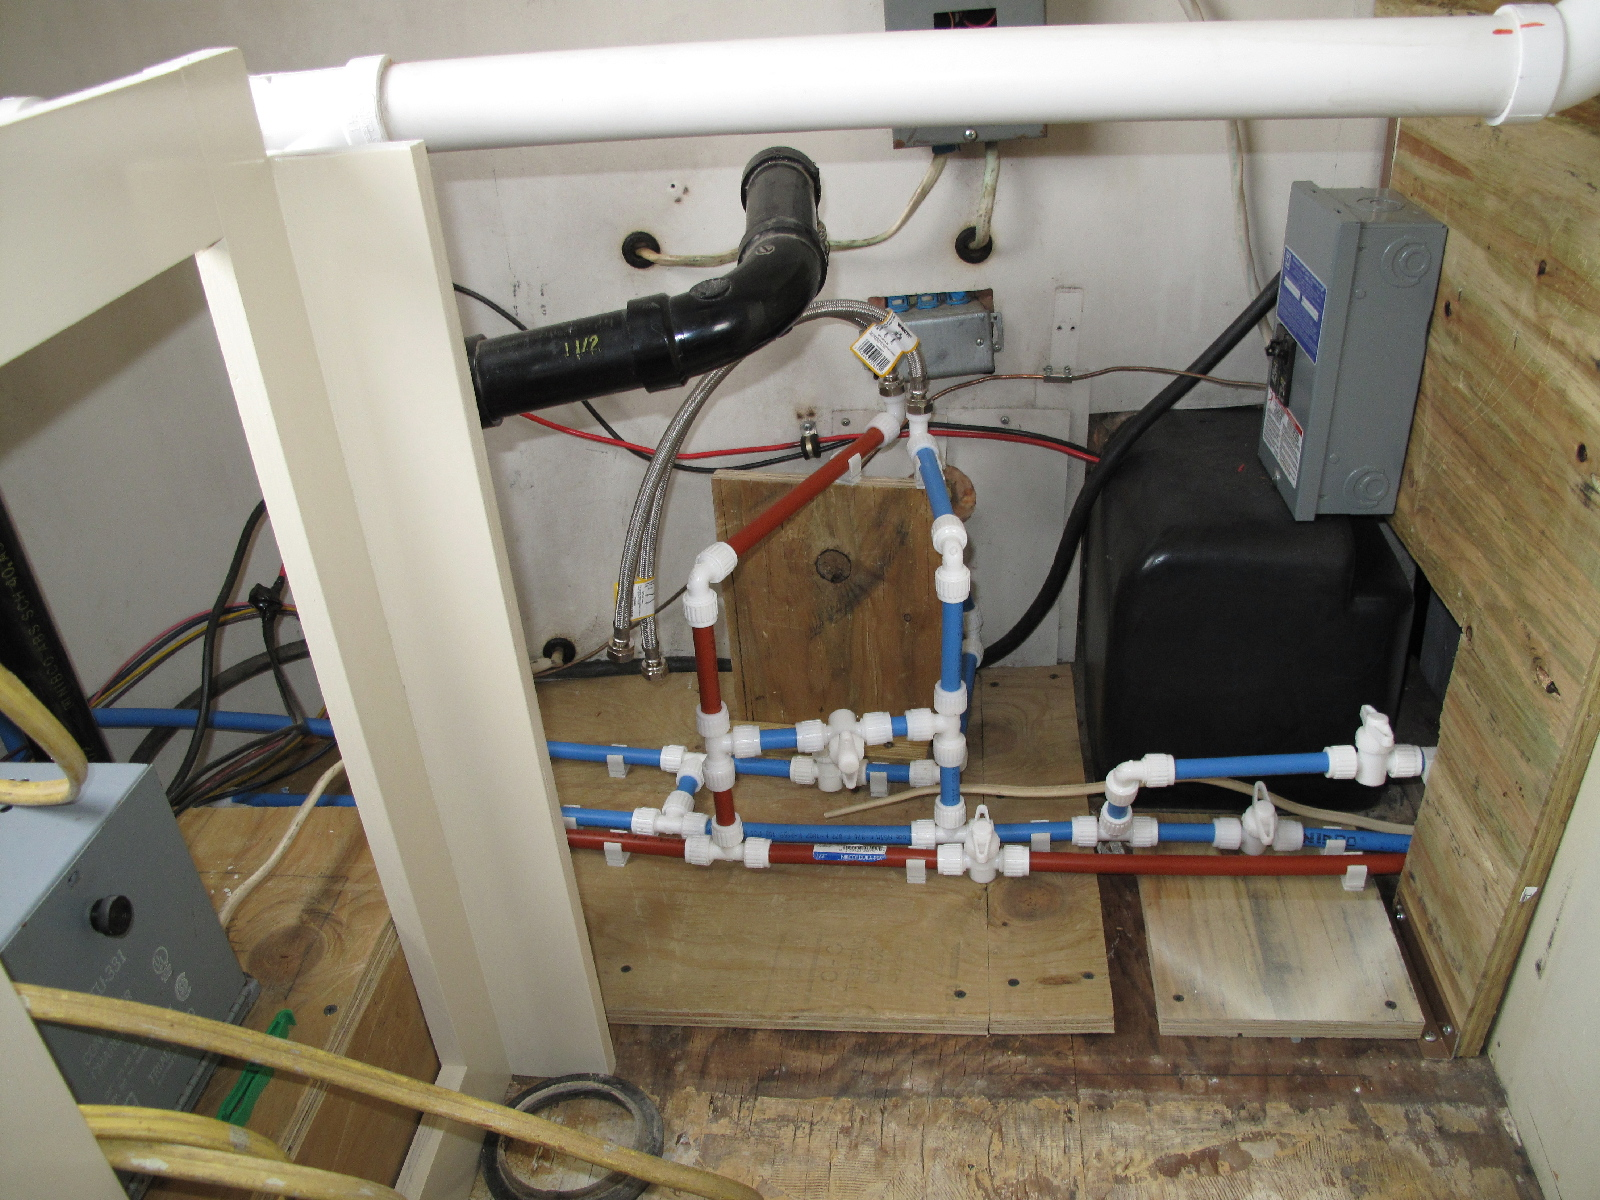 Click image for larger version  Name:New PEX tubing thru out.jpg Views:78 Size:962.1 KB ID:95507